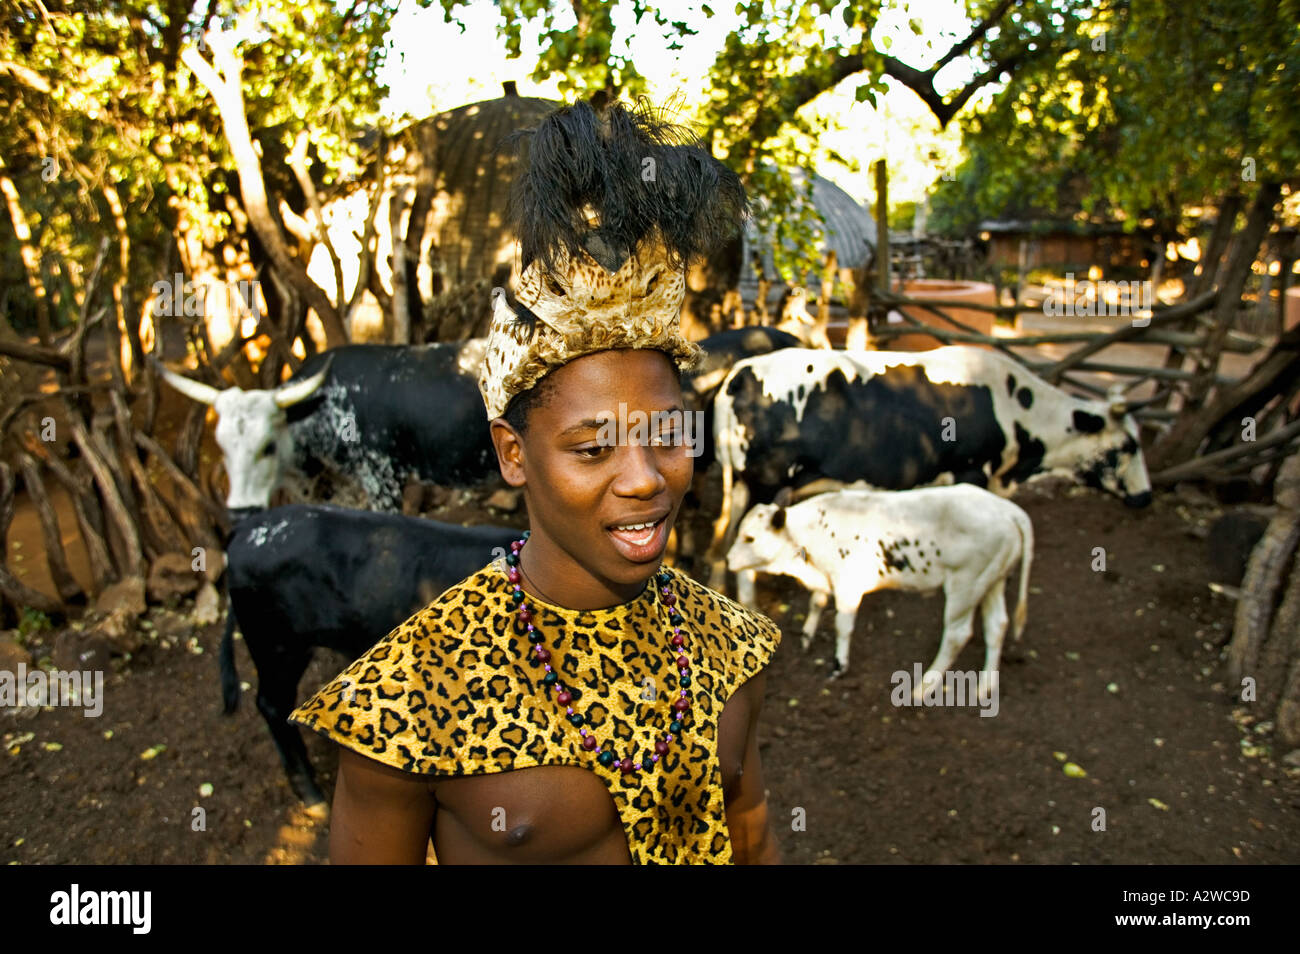 People Zulu Man In Traditional Dress With Cattle Lesedi Cultural Village Near Johannesburg South Africa